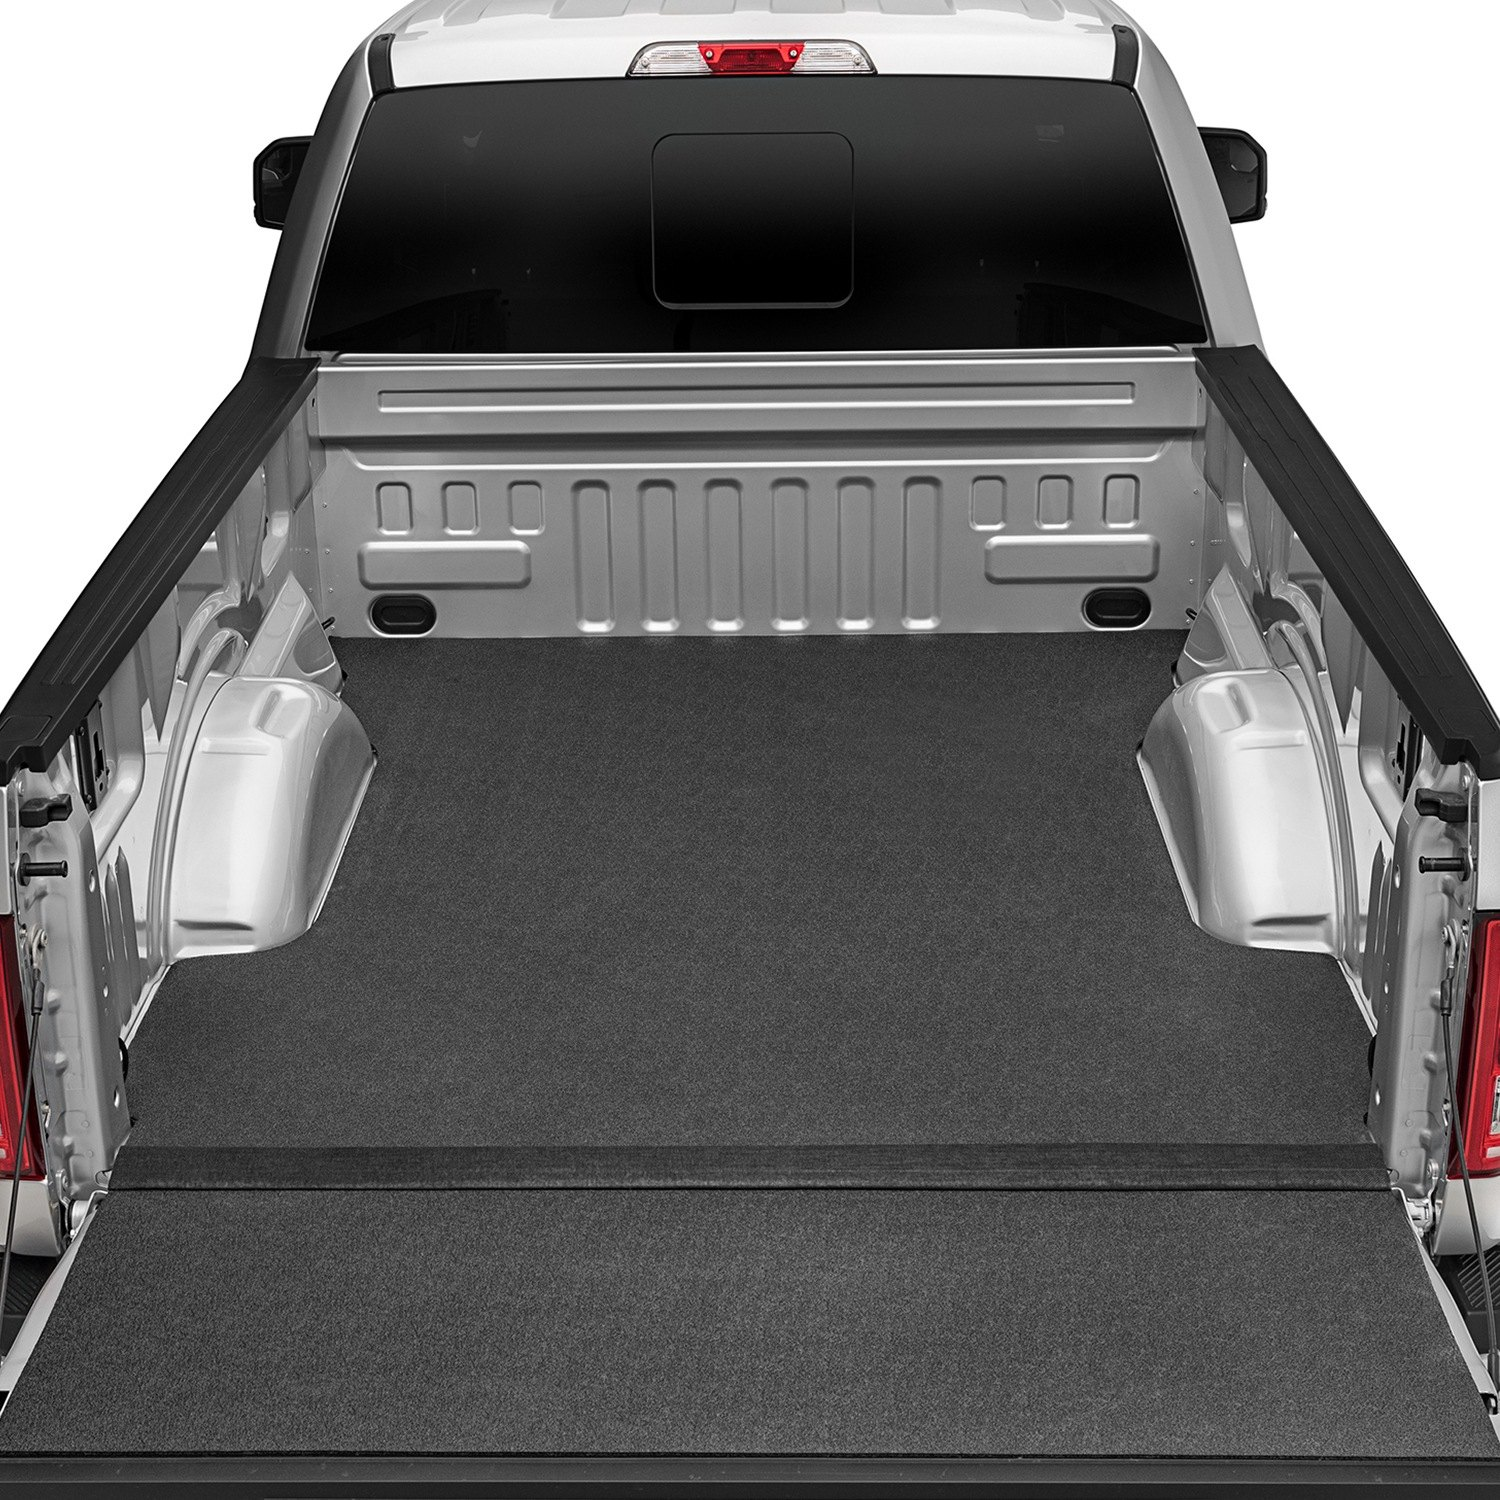 Bedrug 174 Ford F 250 2017 Impact Bed Mat For Non Or Spray